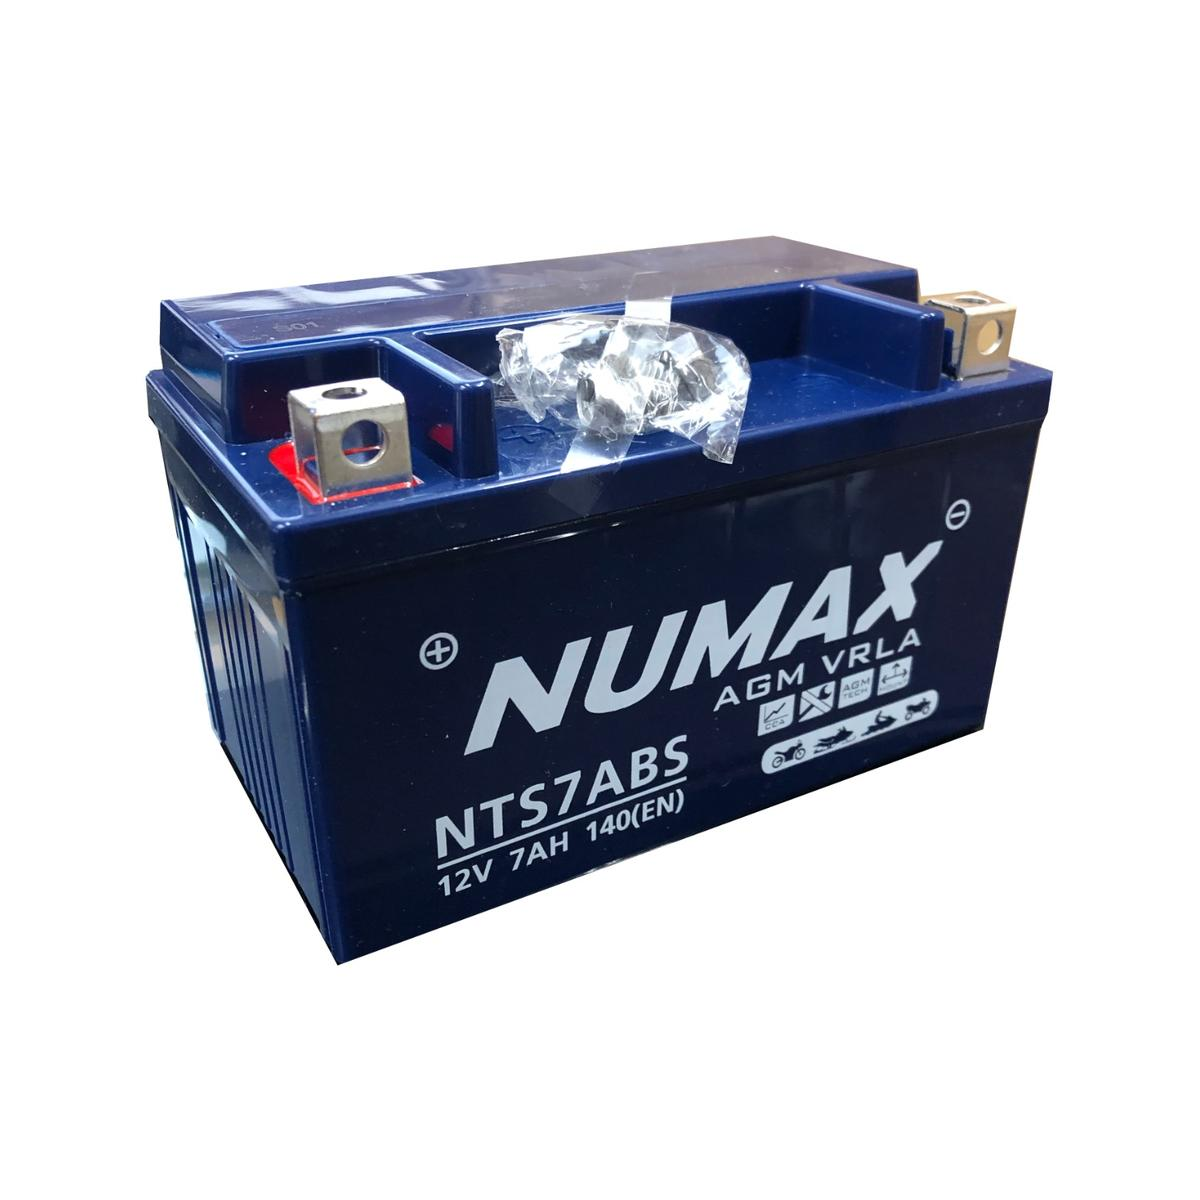 Numax NTS7ABS 12v Motorbike Bike Battery KYMCO 125cc People YTX7A-4